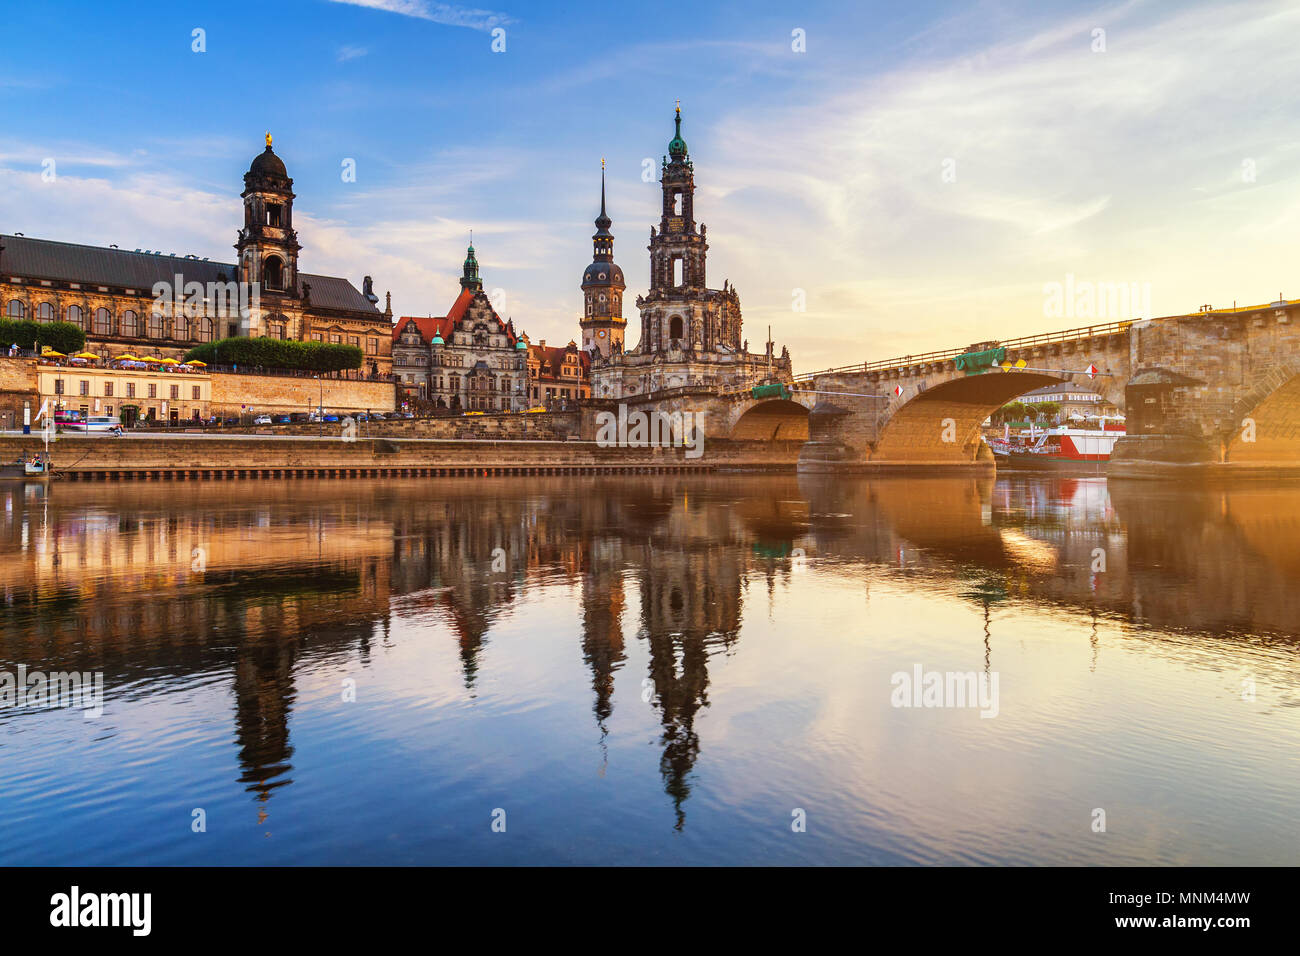 Augustus Bridge (Augustusbrucke) and Cathedral of the Holy Trinity (Hofkirche) over the River Elbe in Dresden, Germany, Saxony. - Stock Image